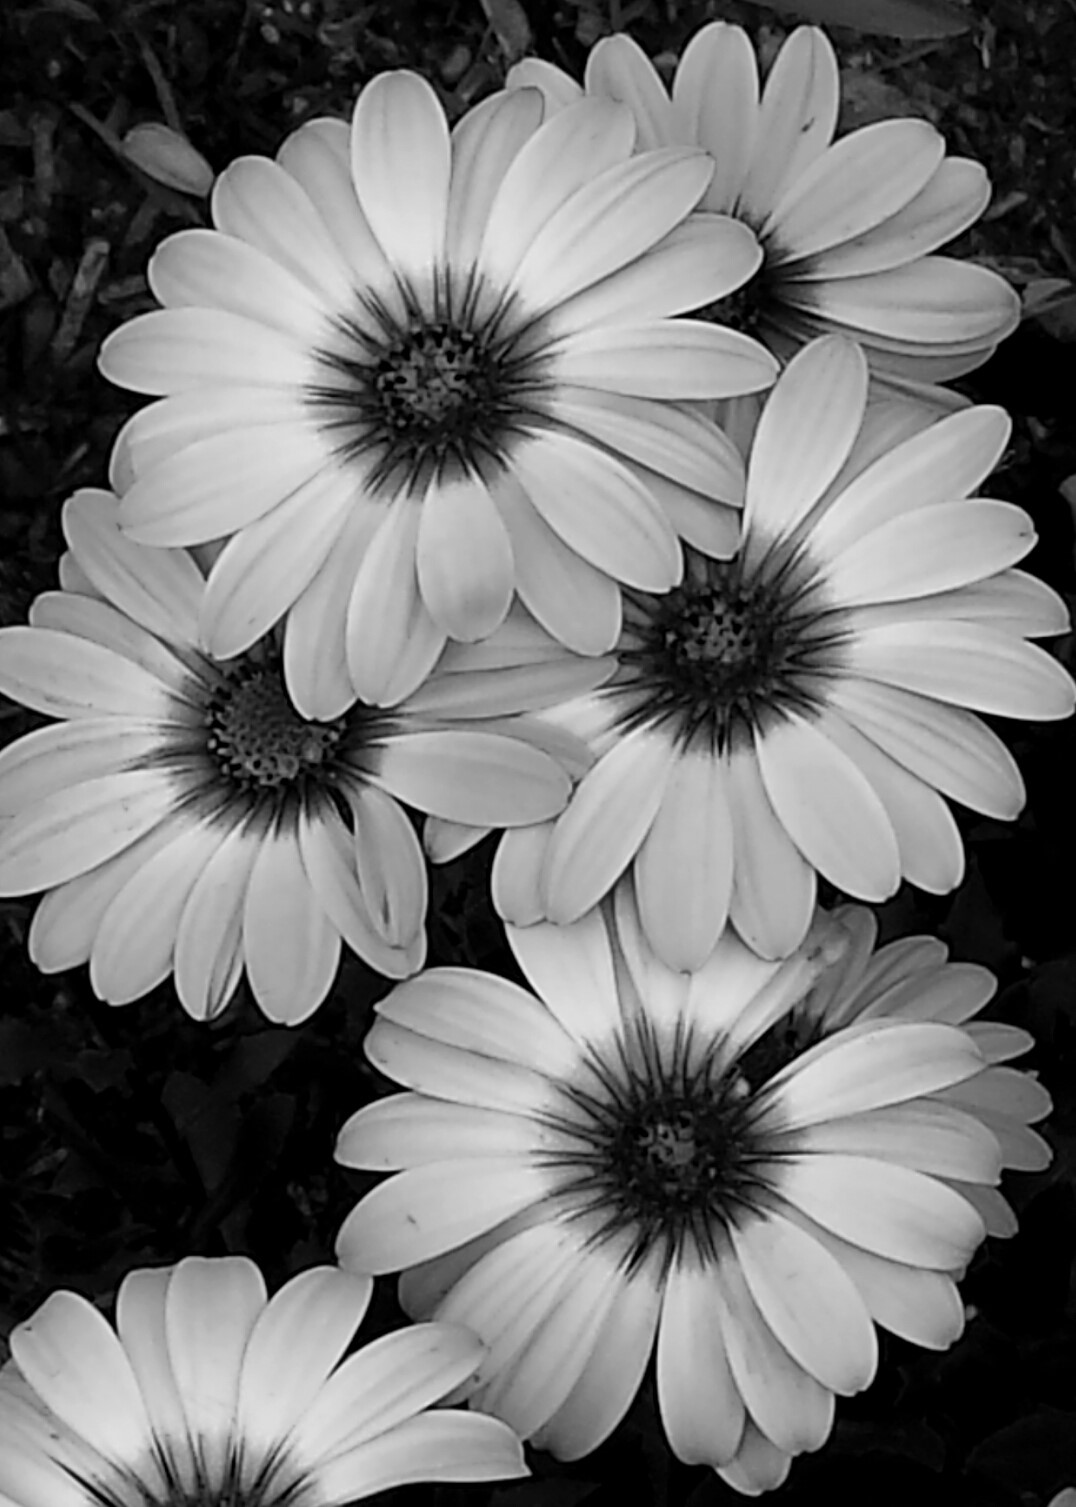 Black&White Photograph of Daisies